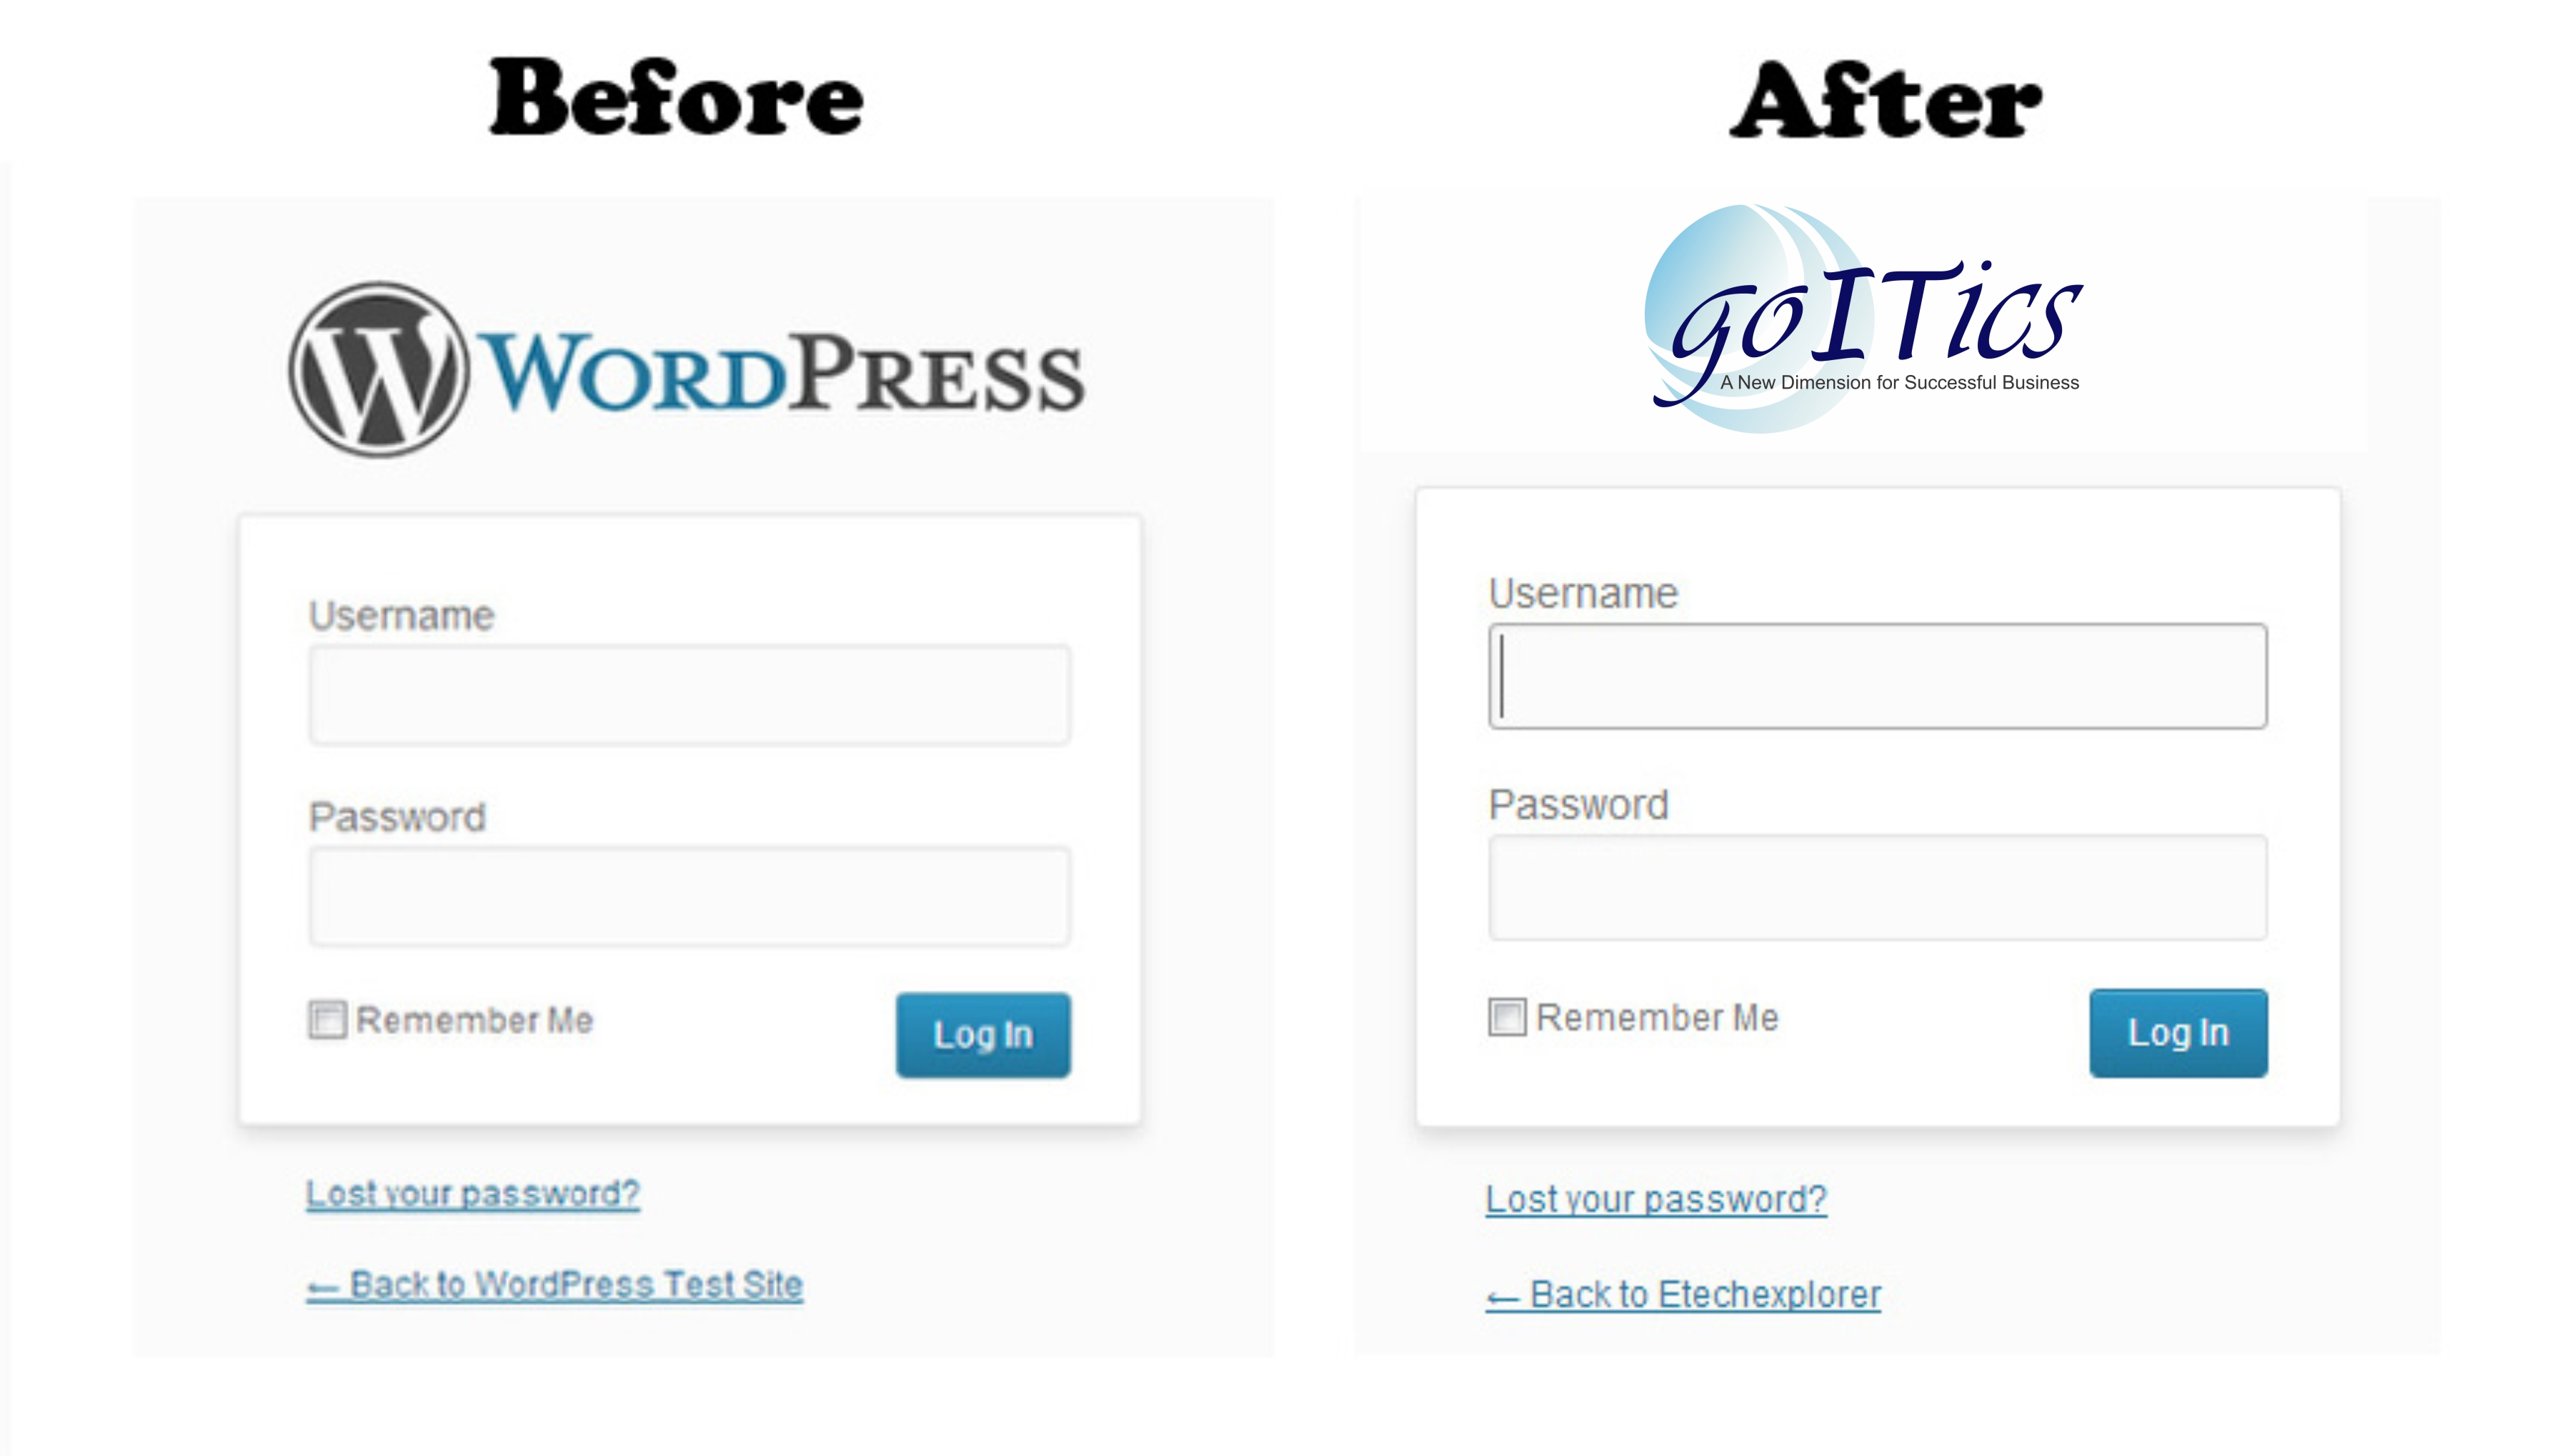 Replace WordPress logo in login page.